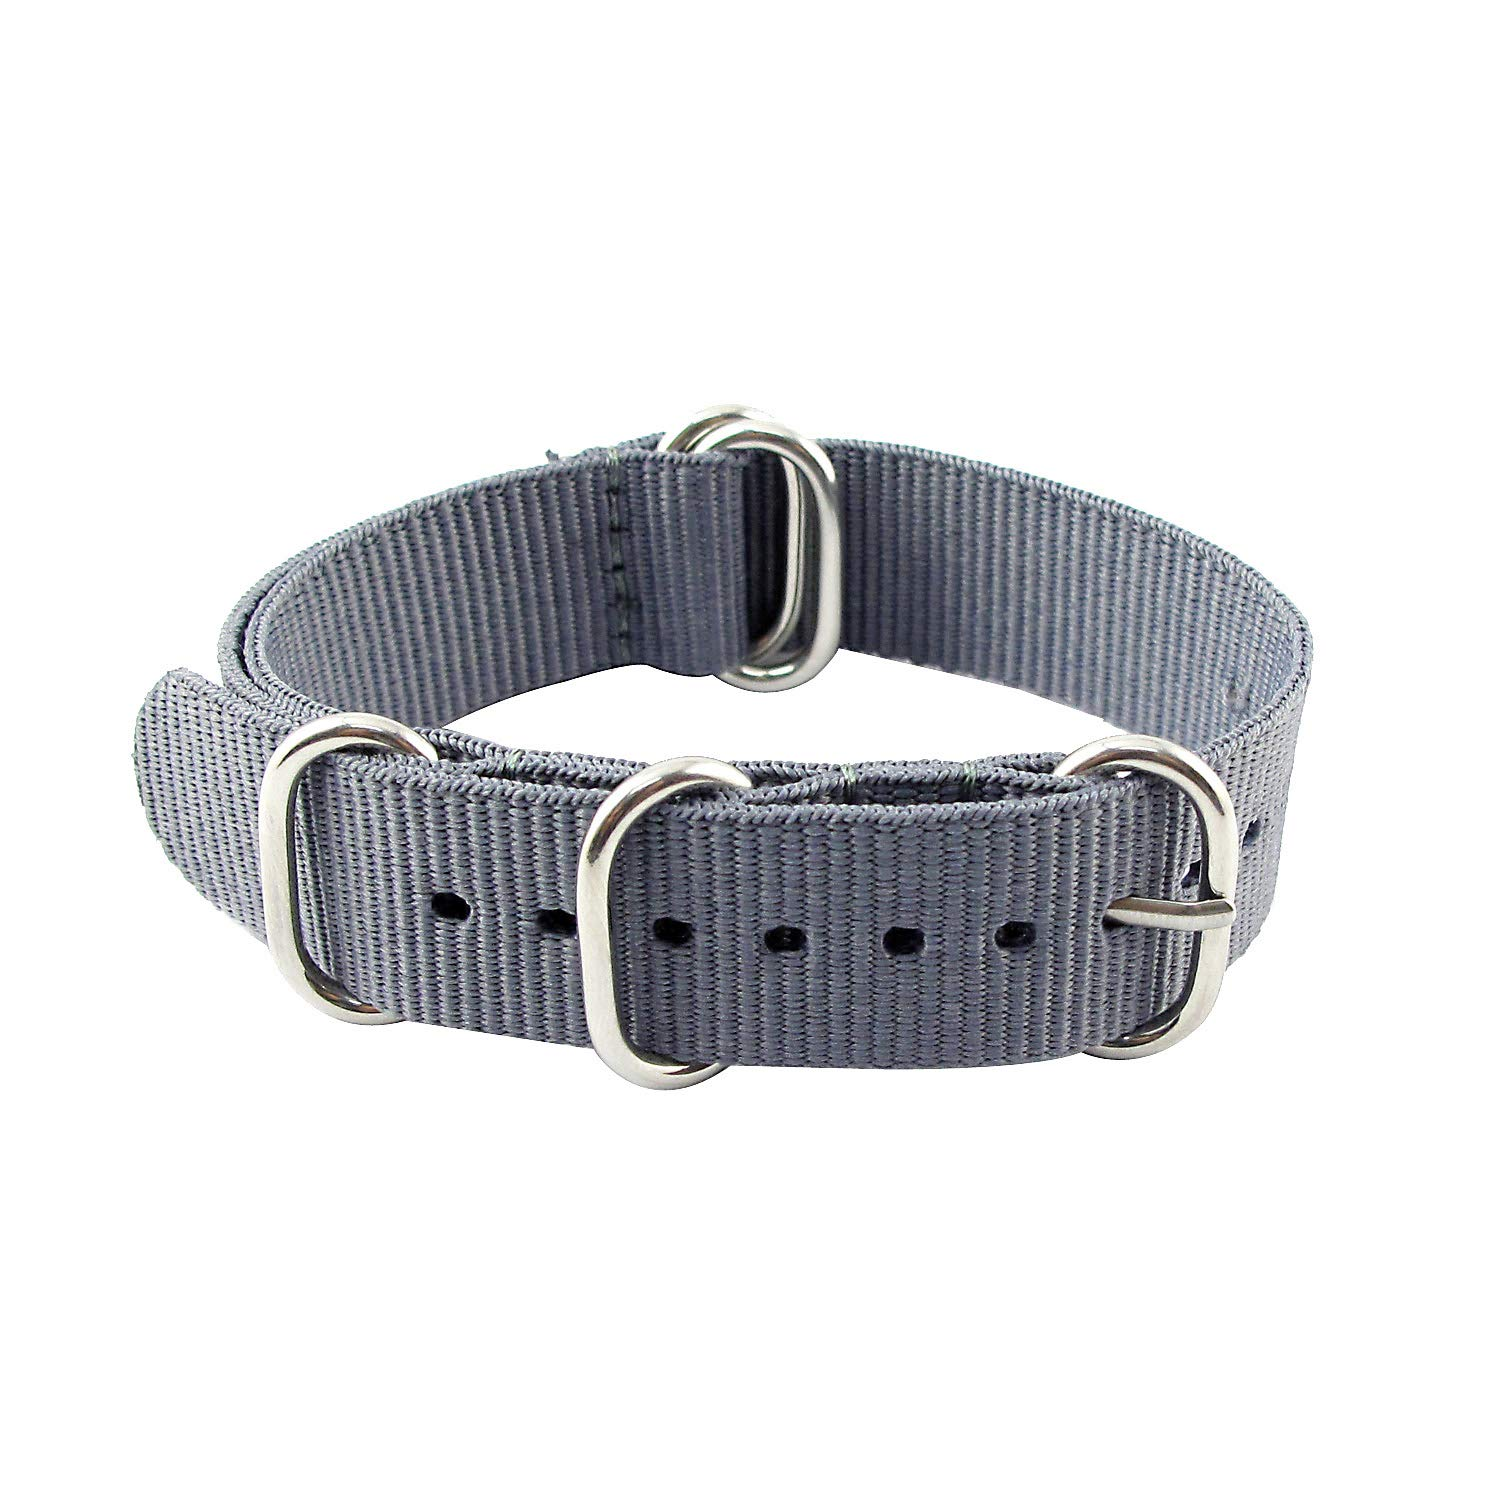 MapofBeauty Unisex 18mm/20mm/22mm Stainless Steel Pin Clasp Nylon Simple Fashion Watchband (Silver Gray Strap)